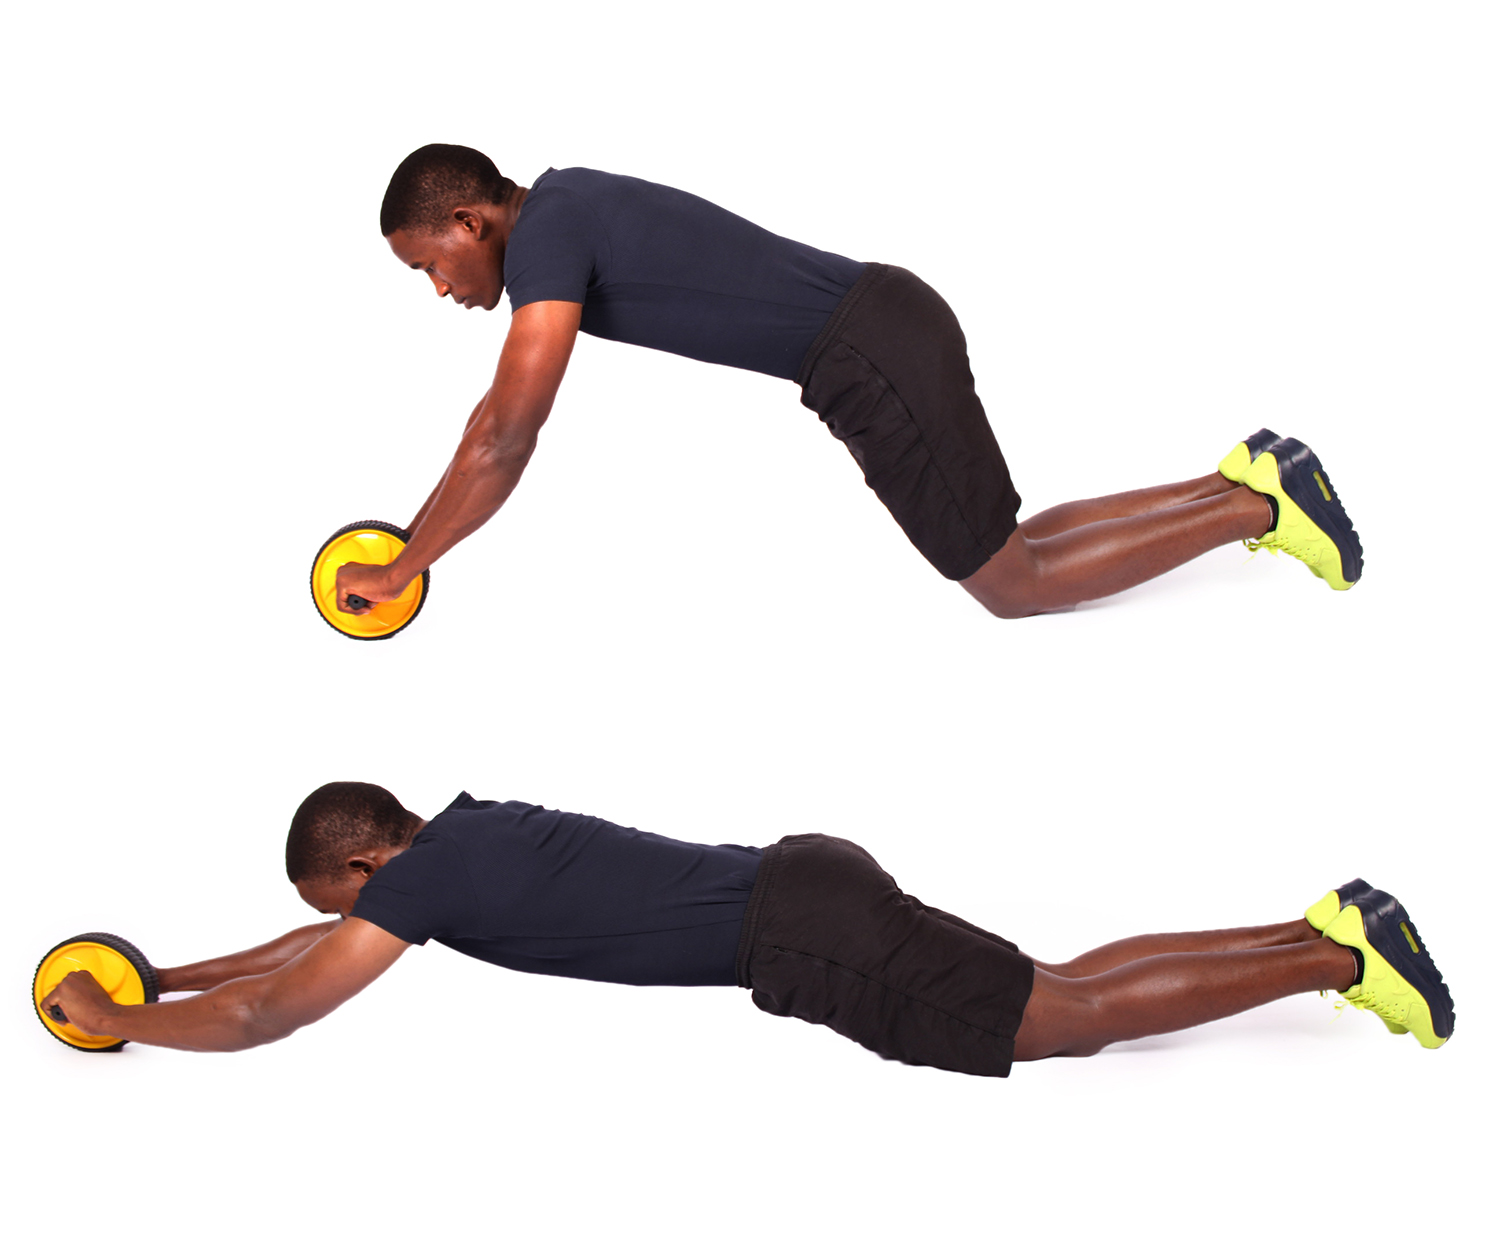 How to do ab wheel roller exercise